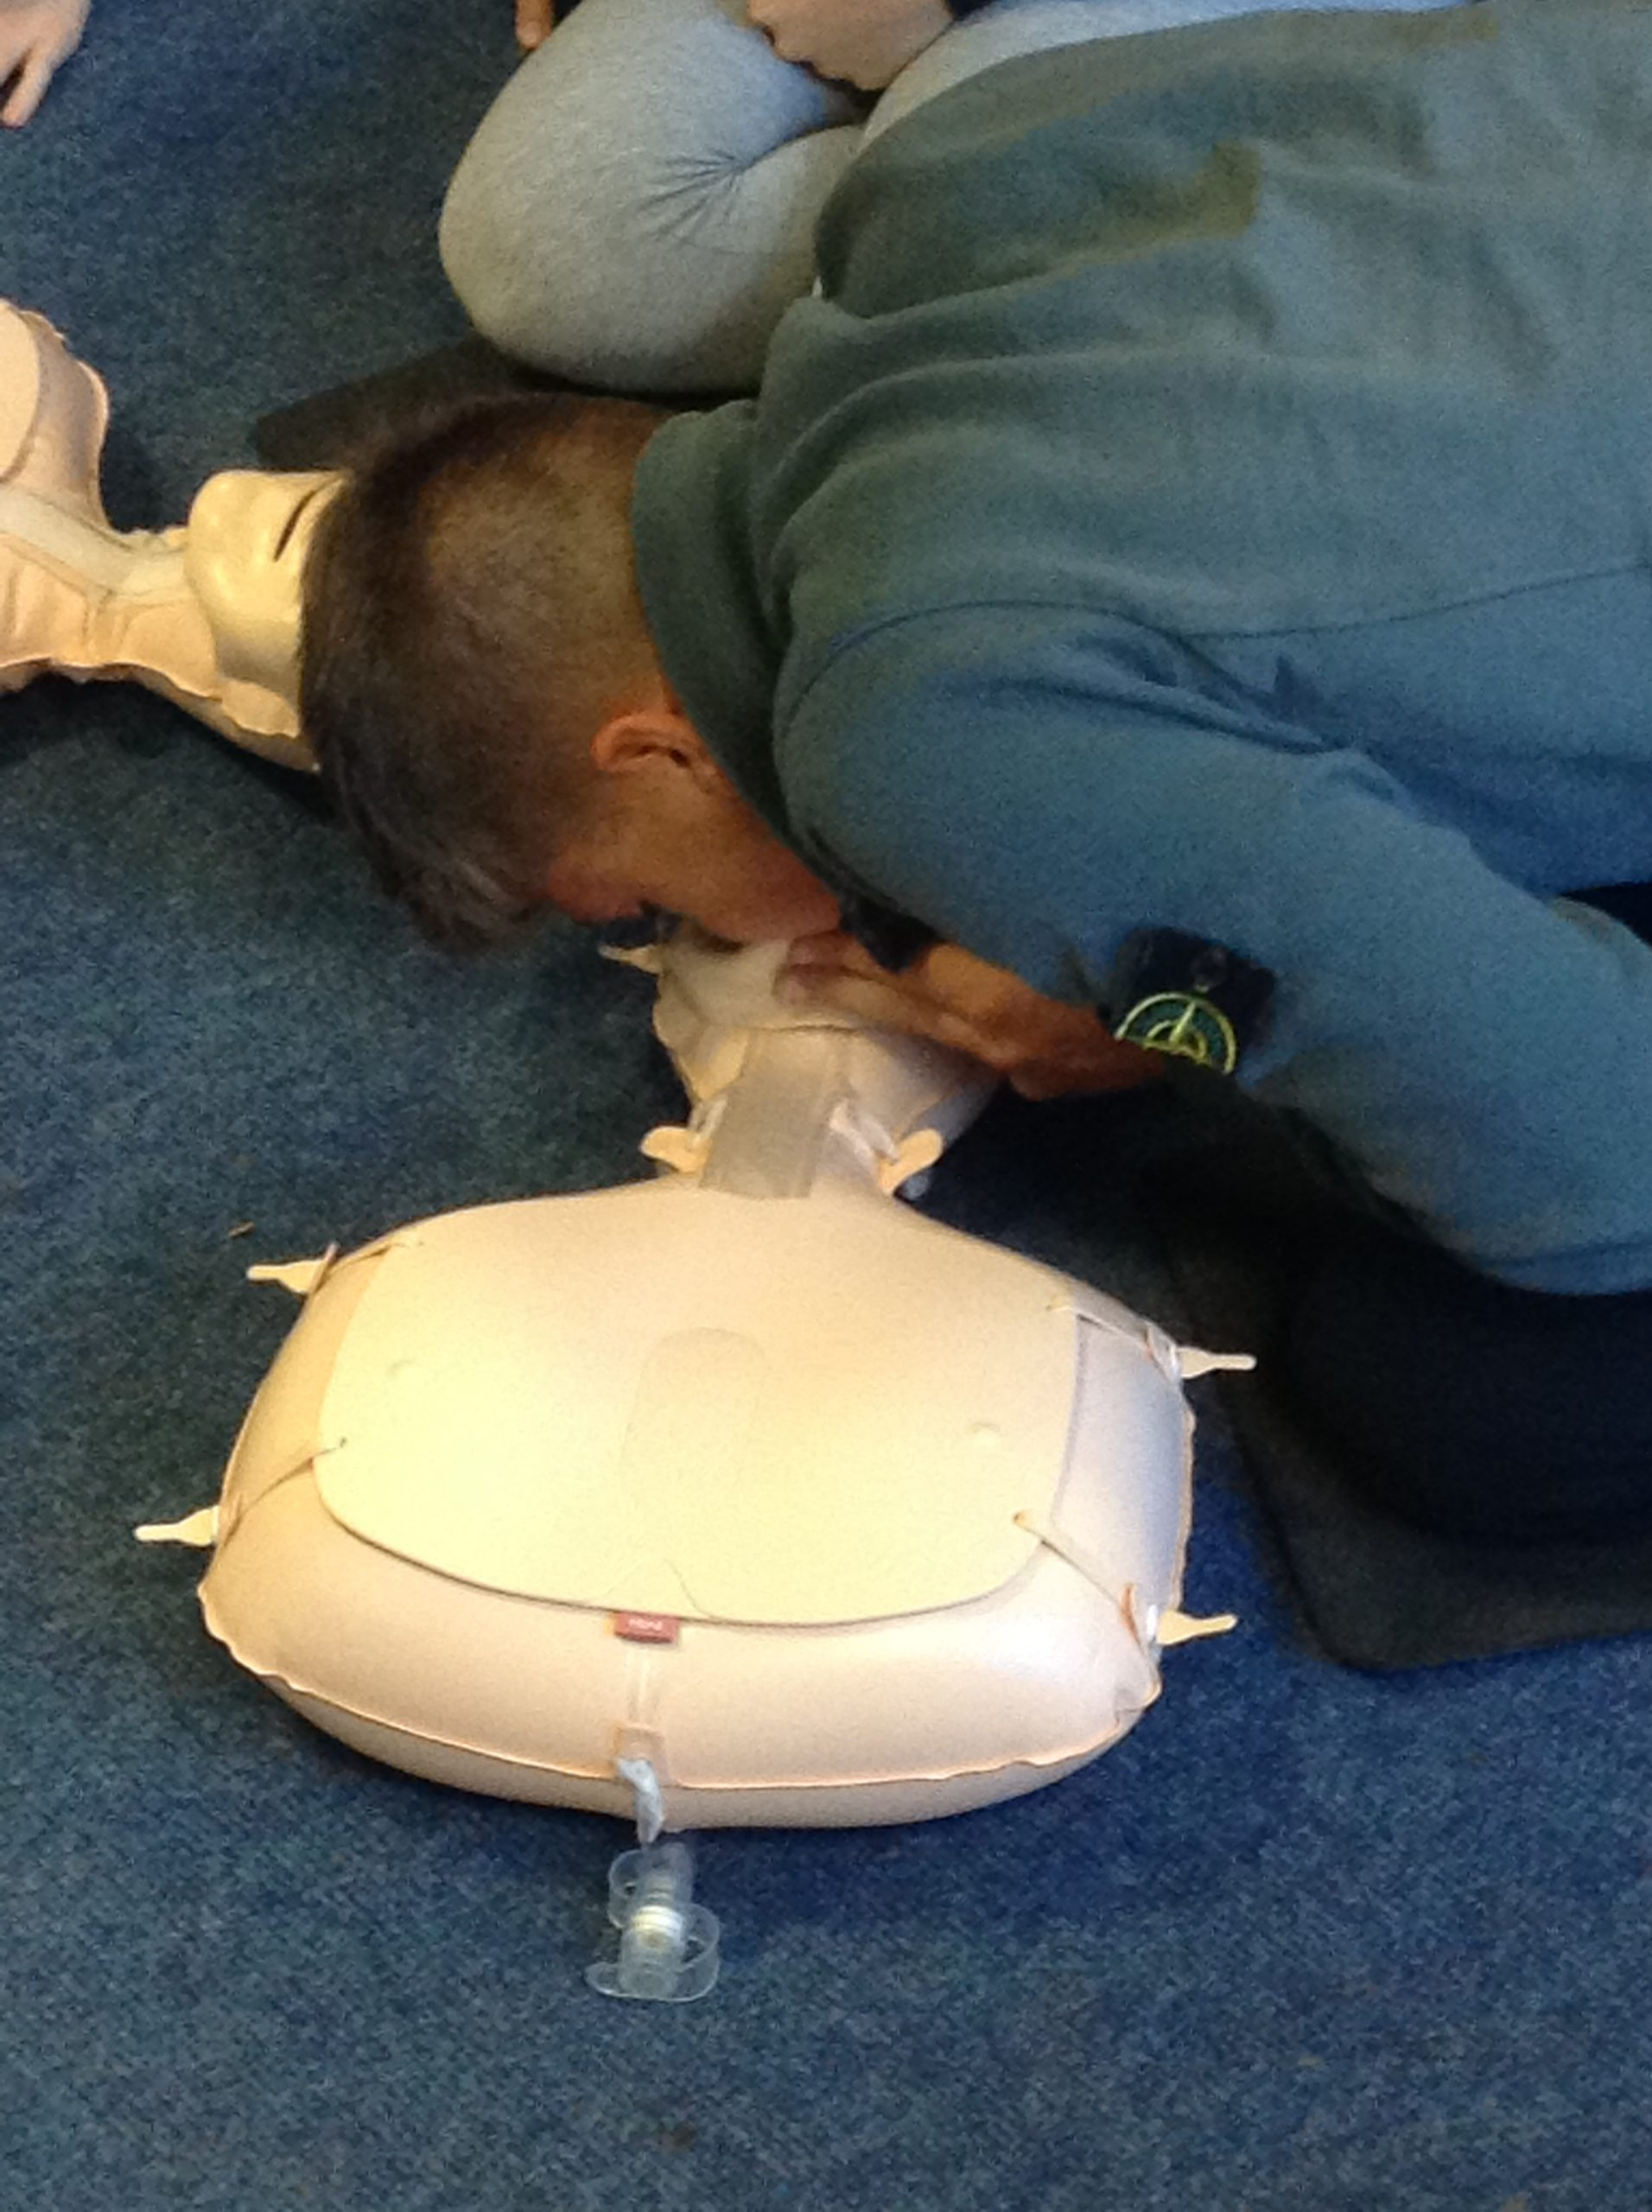 QE students make a difference with cardiac arrest training